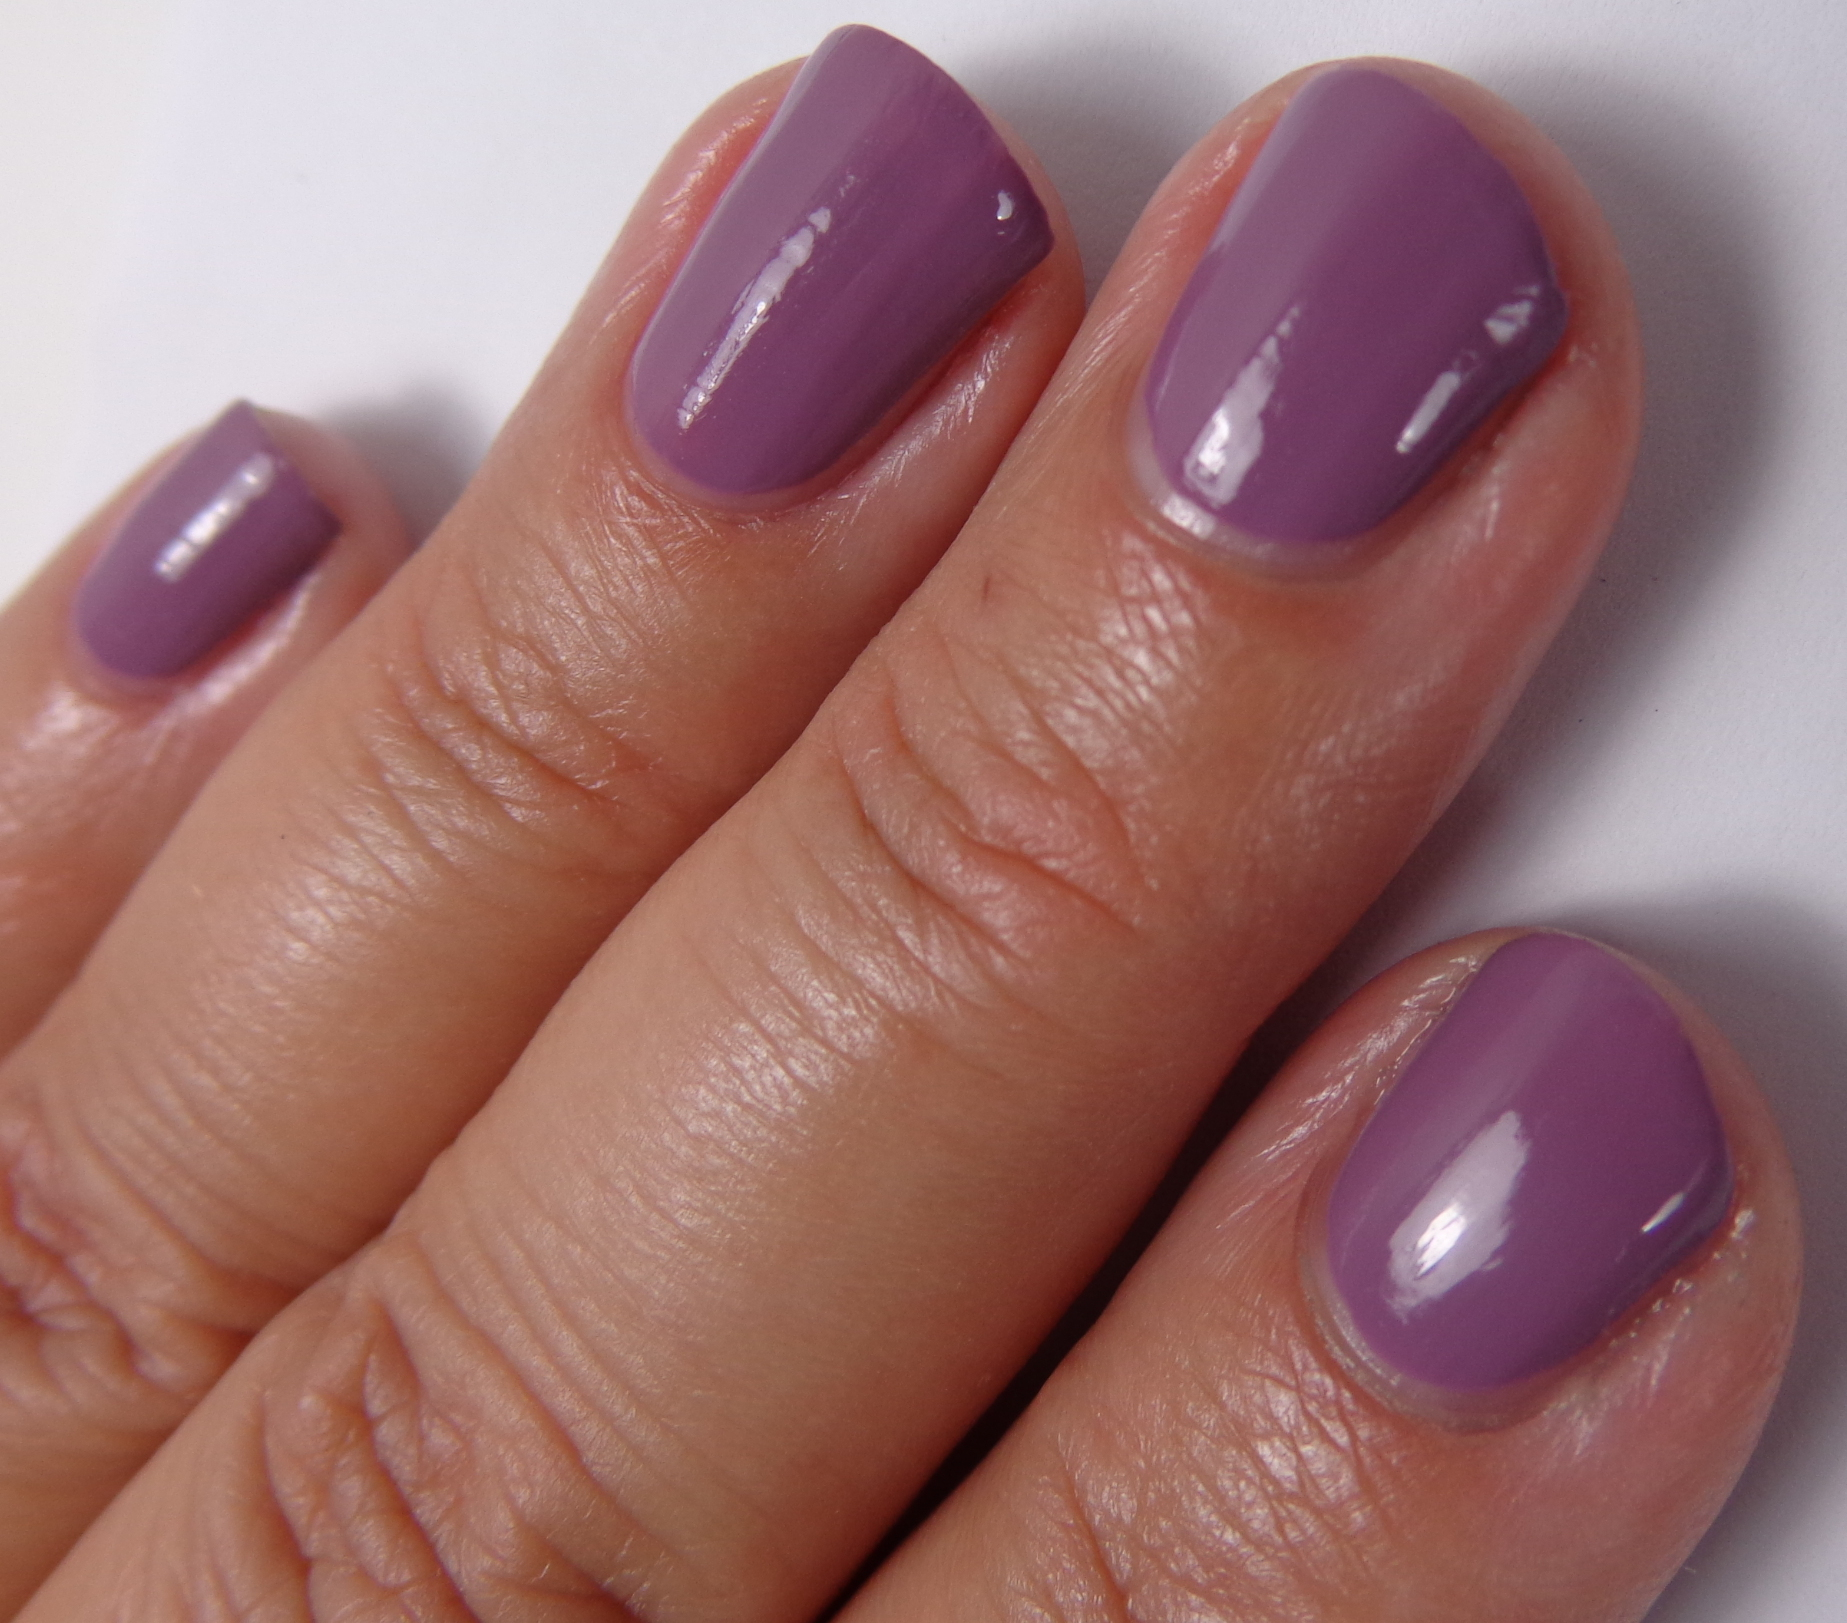 Overall, I found Wet n Wild Megalast Salon Nail Color ...